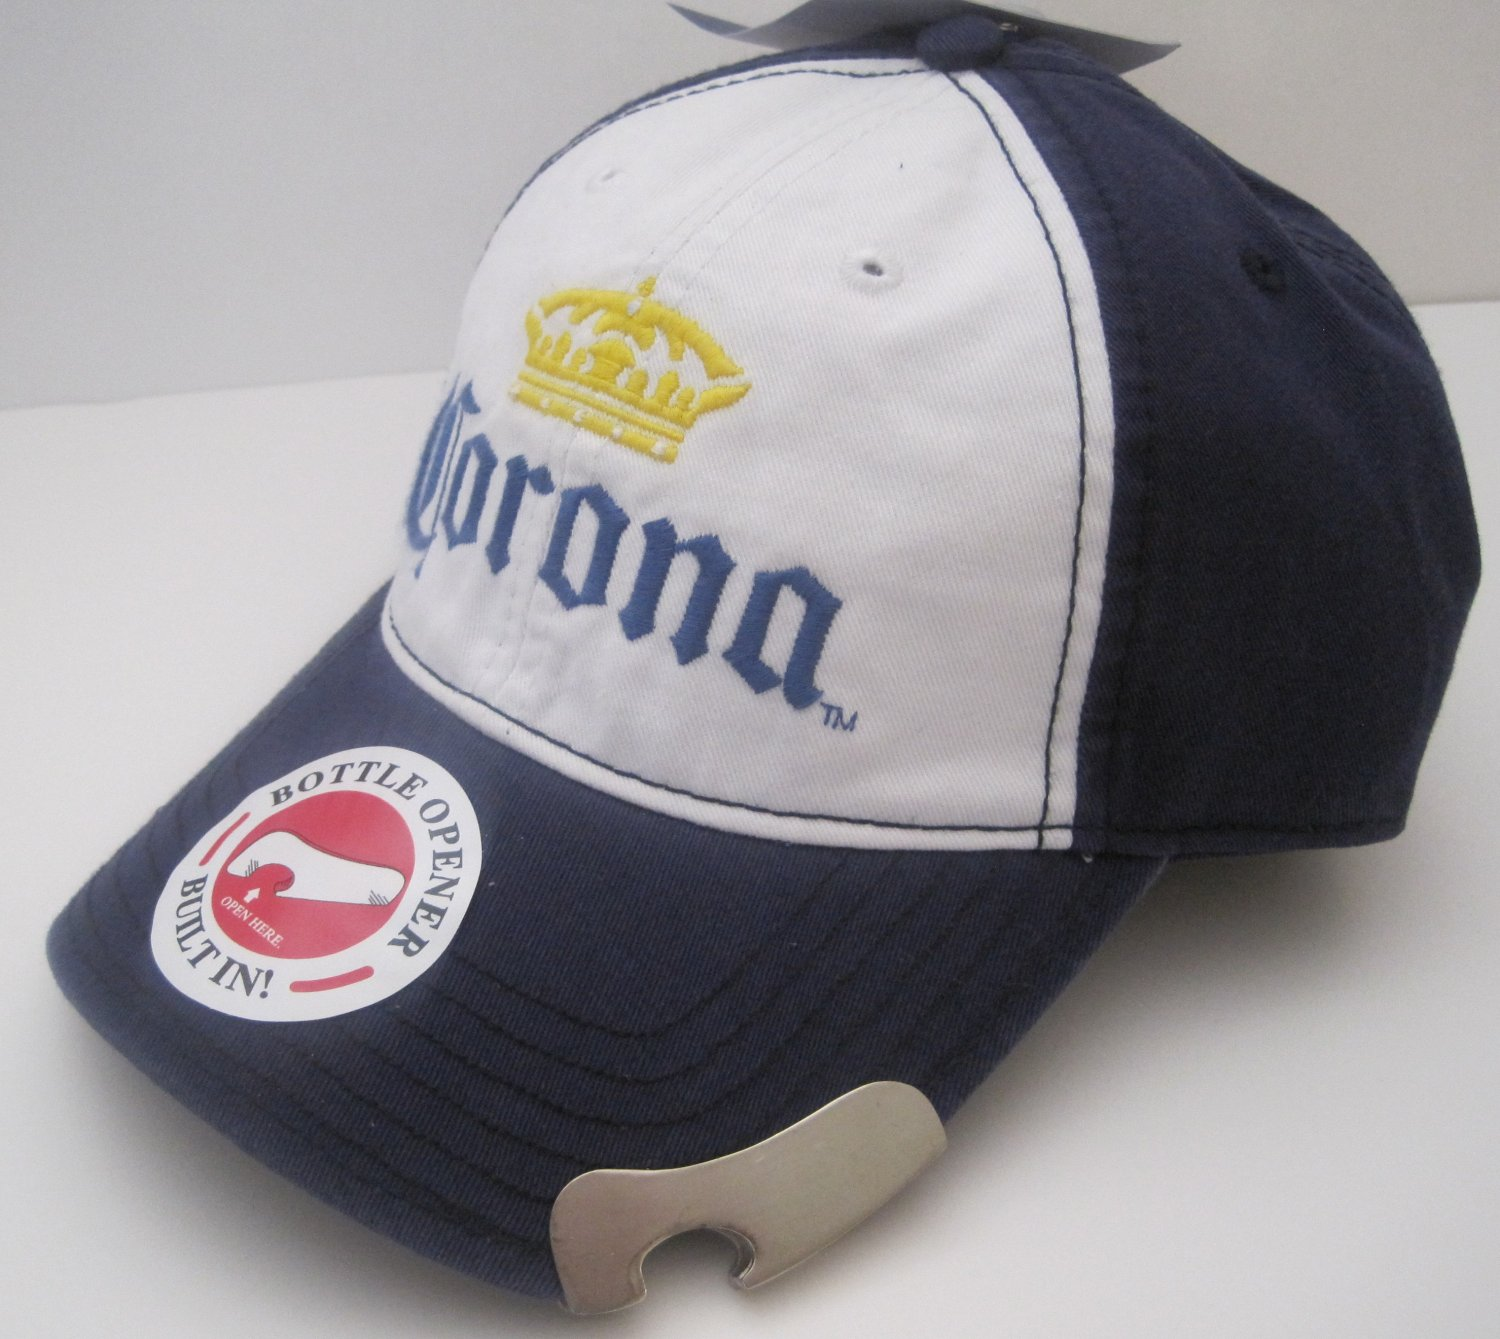 Corona Extra Beer Cerveza Bottle Opener Ball Cap Hat